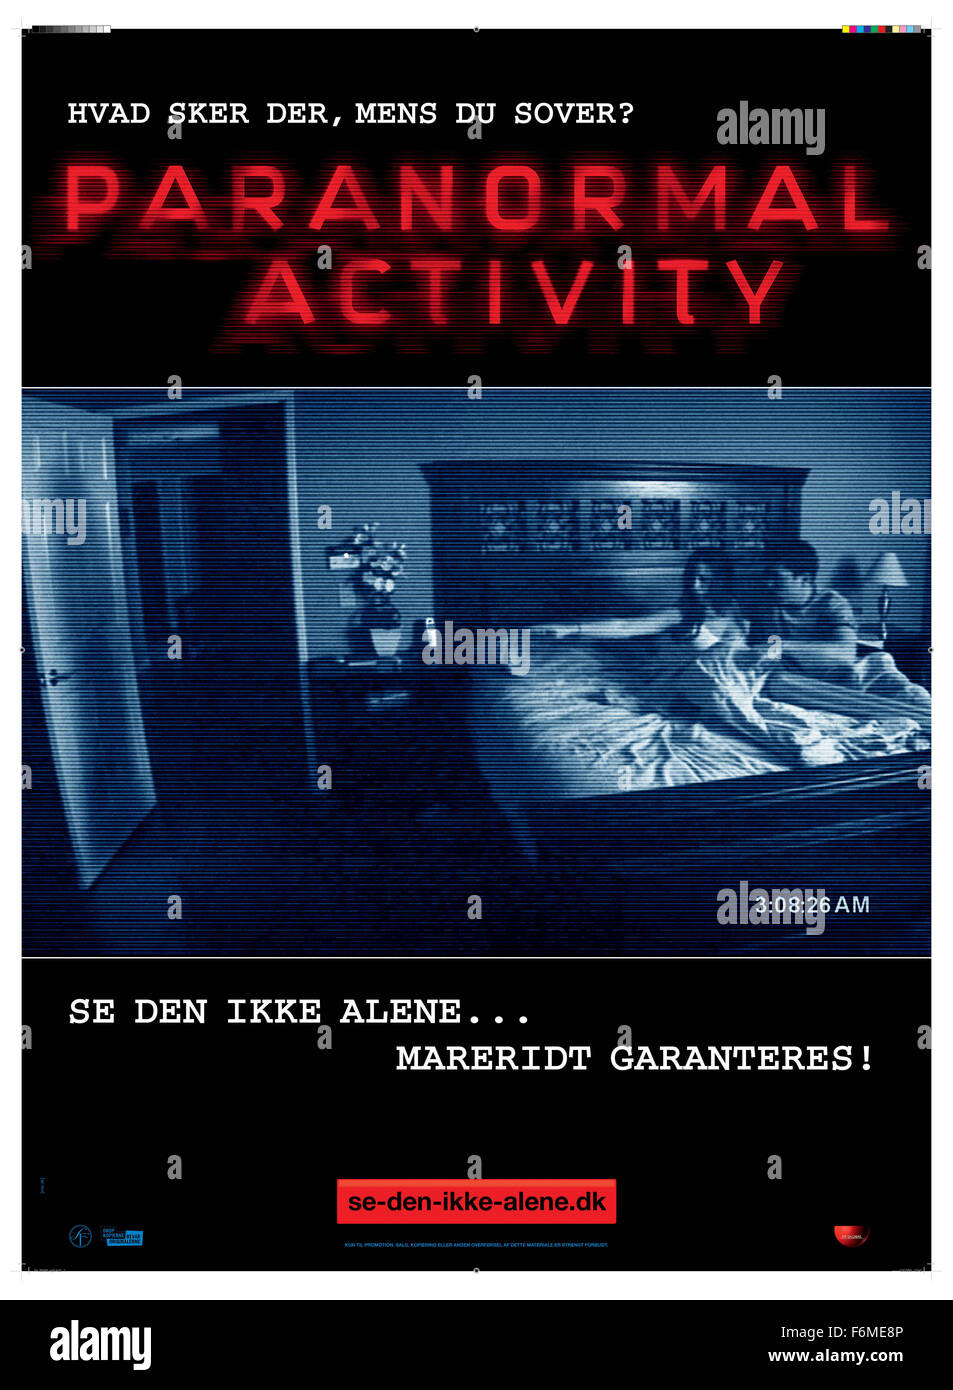 Release Date October 16 2009 Movie Title Paranormal Activity Stock Photo Alamy